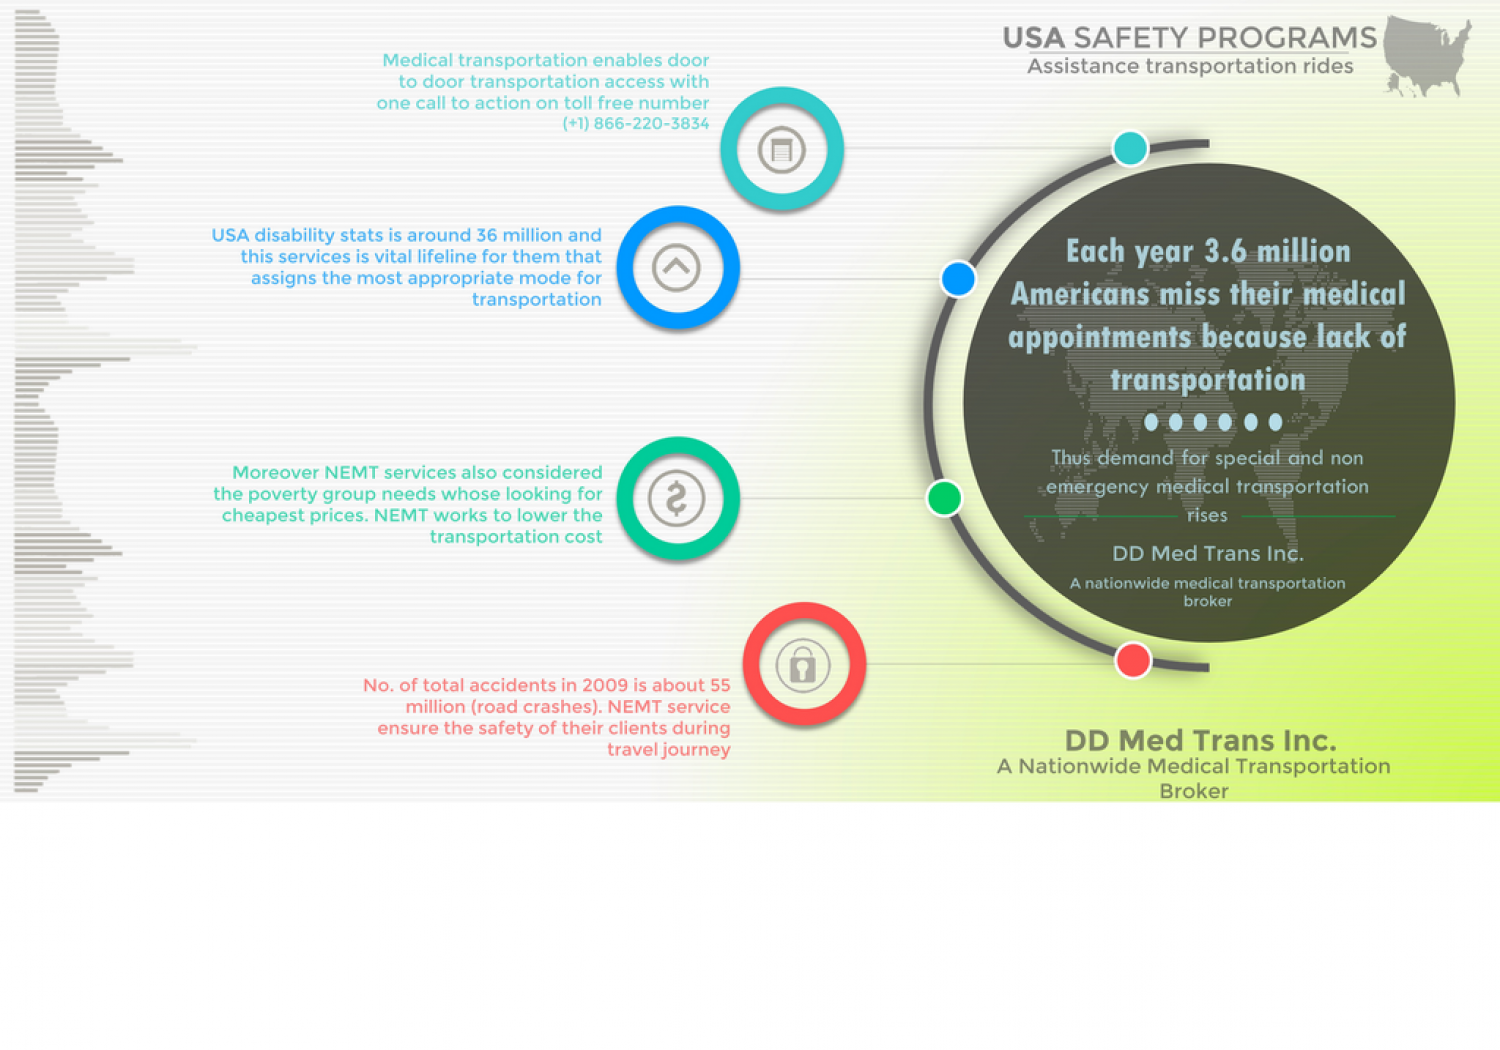 USA Safety Programs - Assistance Transportation Rides Infographic Infographic